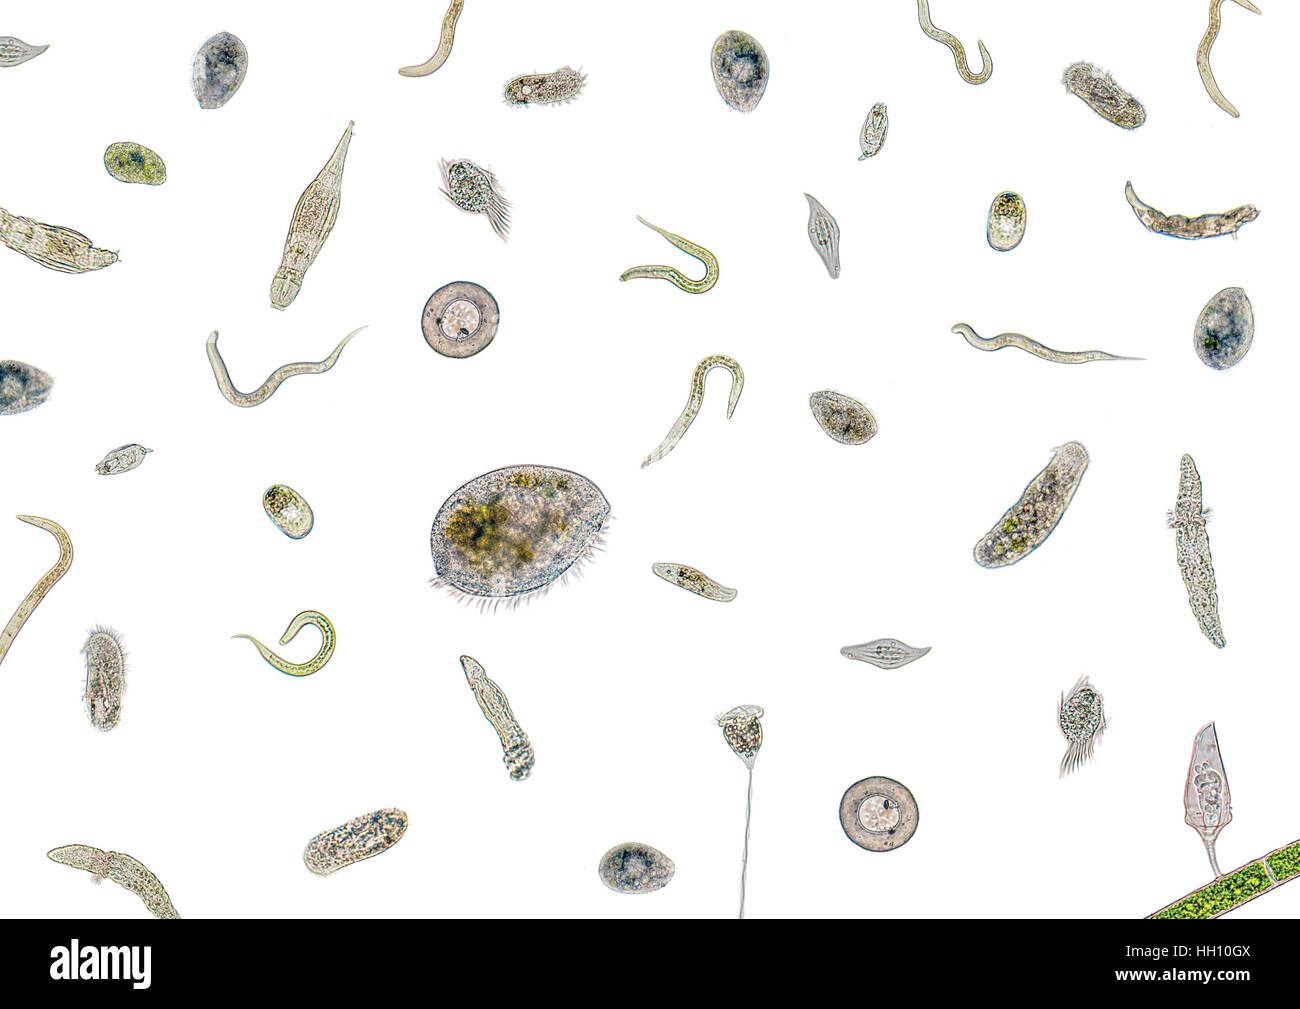 micrography showing lots of various freshwater microorganisms in light back - Stock Image